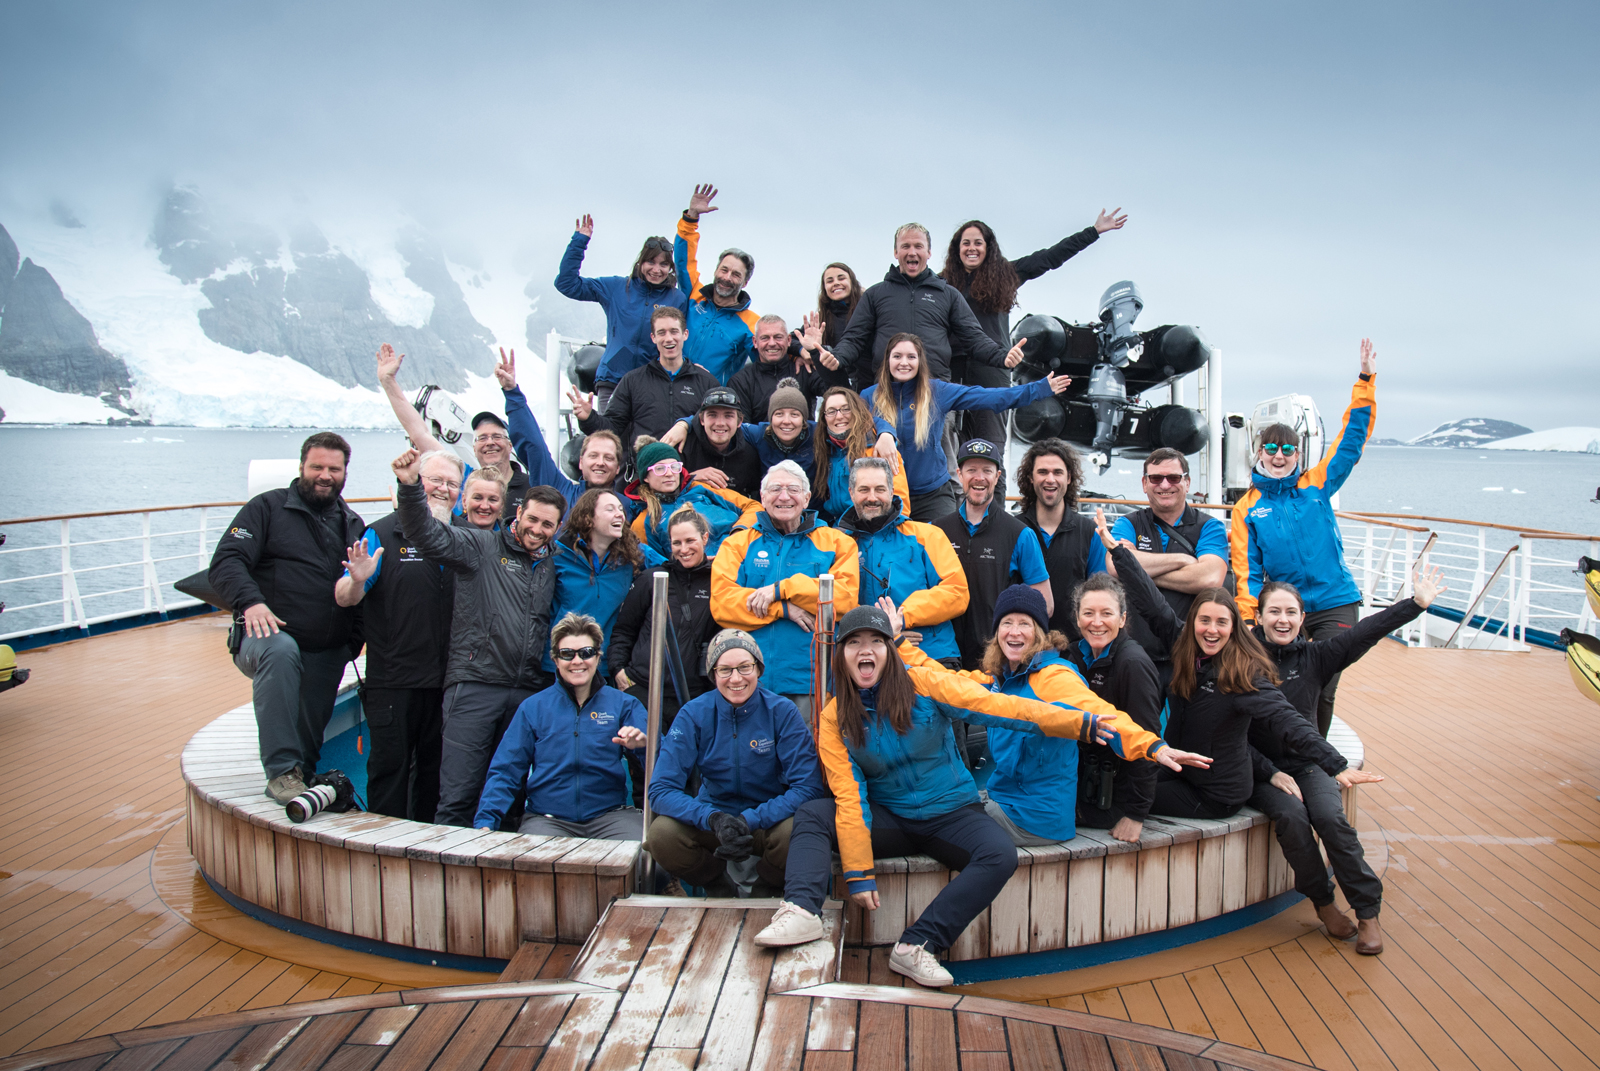 Expedition Team Members pose for a group photo on the Ocean Diamond